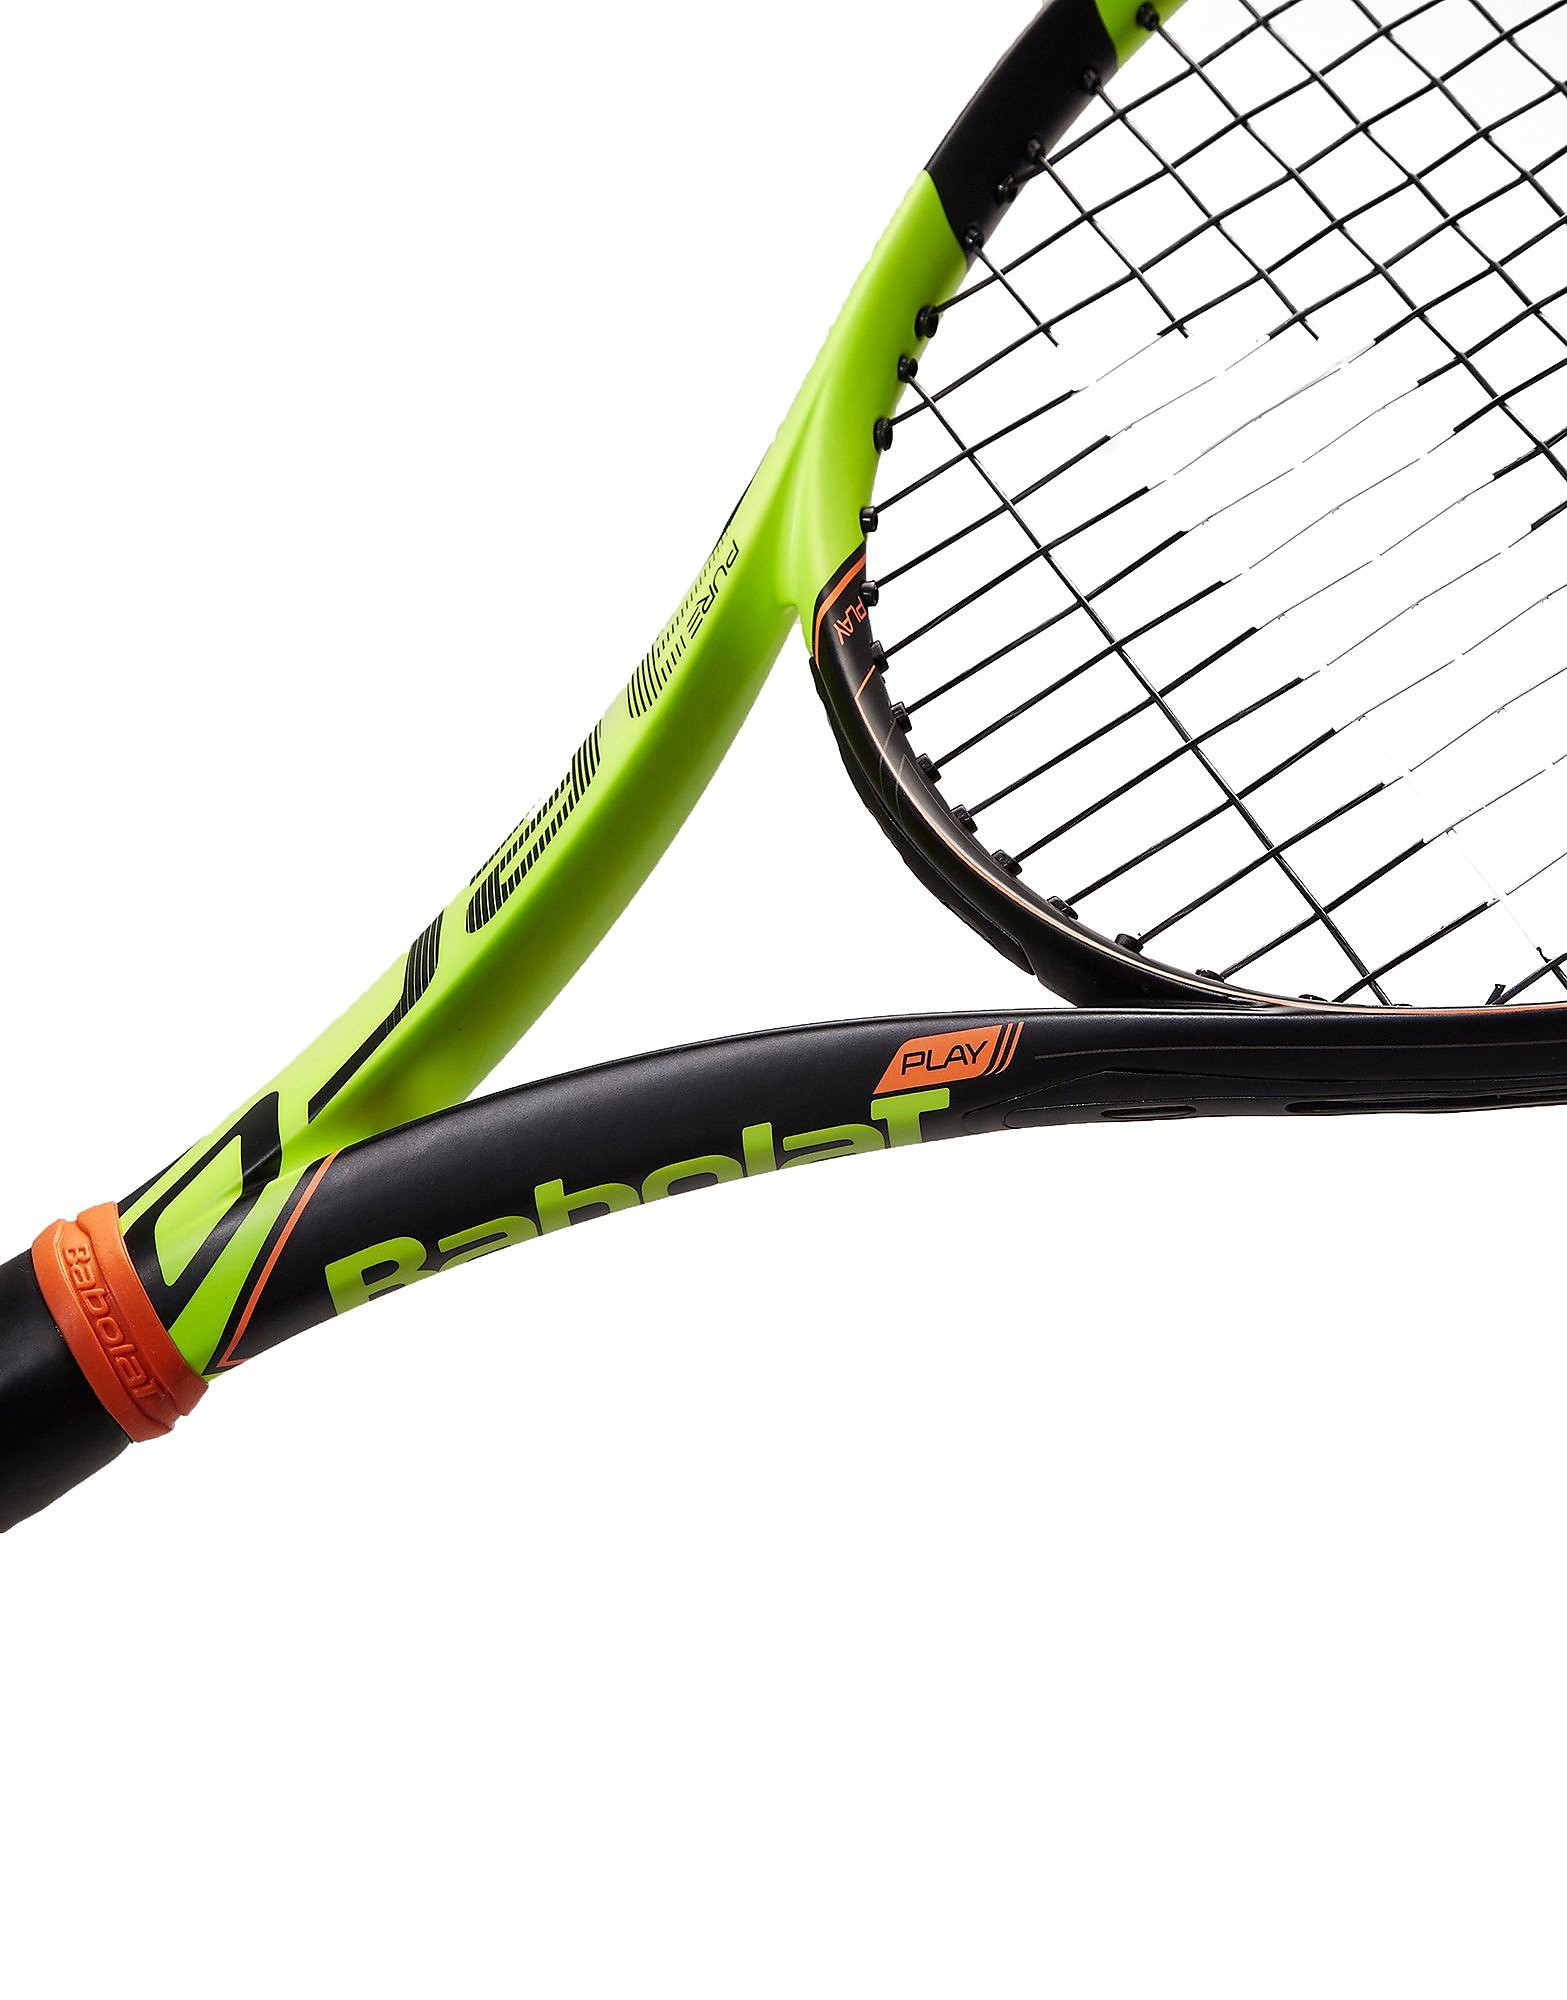 Babolat Pure Aero Play Strung Tennis Racket